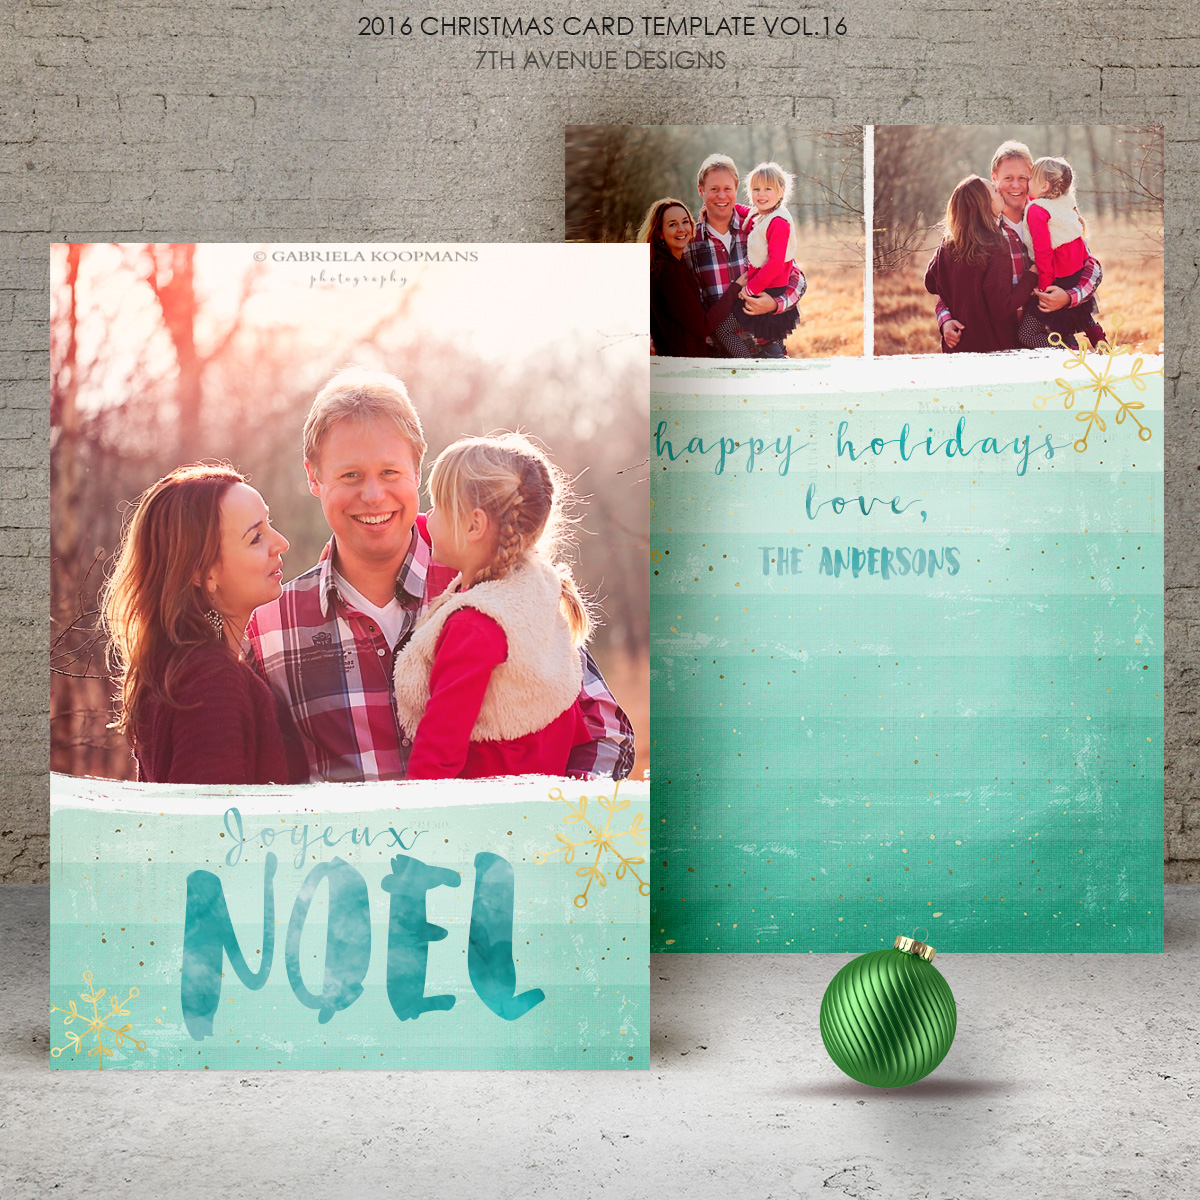 2016 Christmas Card Templates vol.16 -- 7x5 inch card template